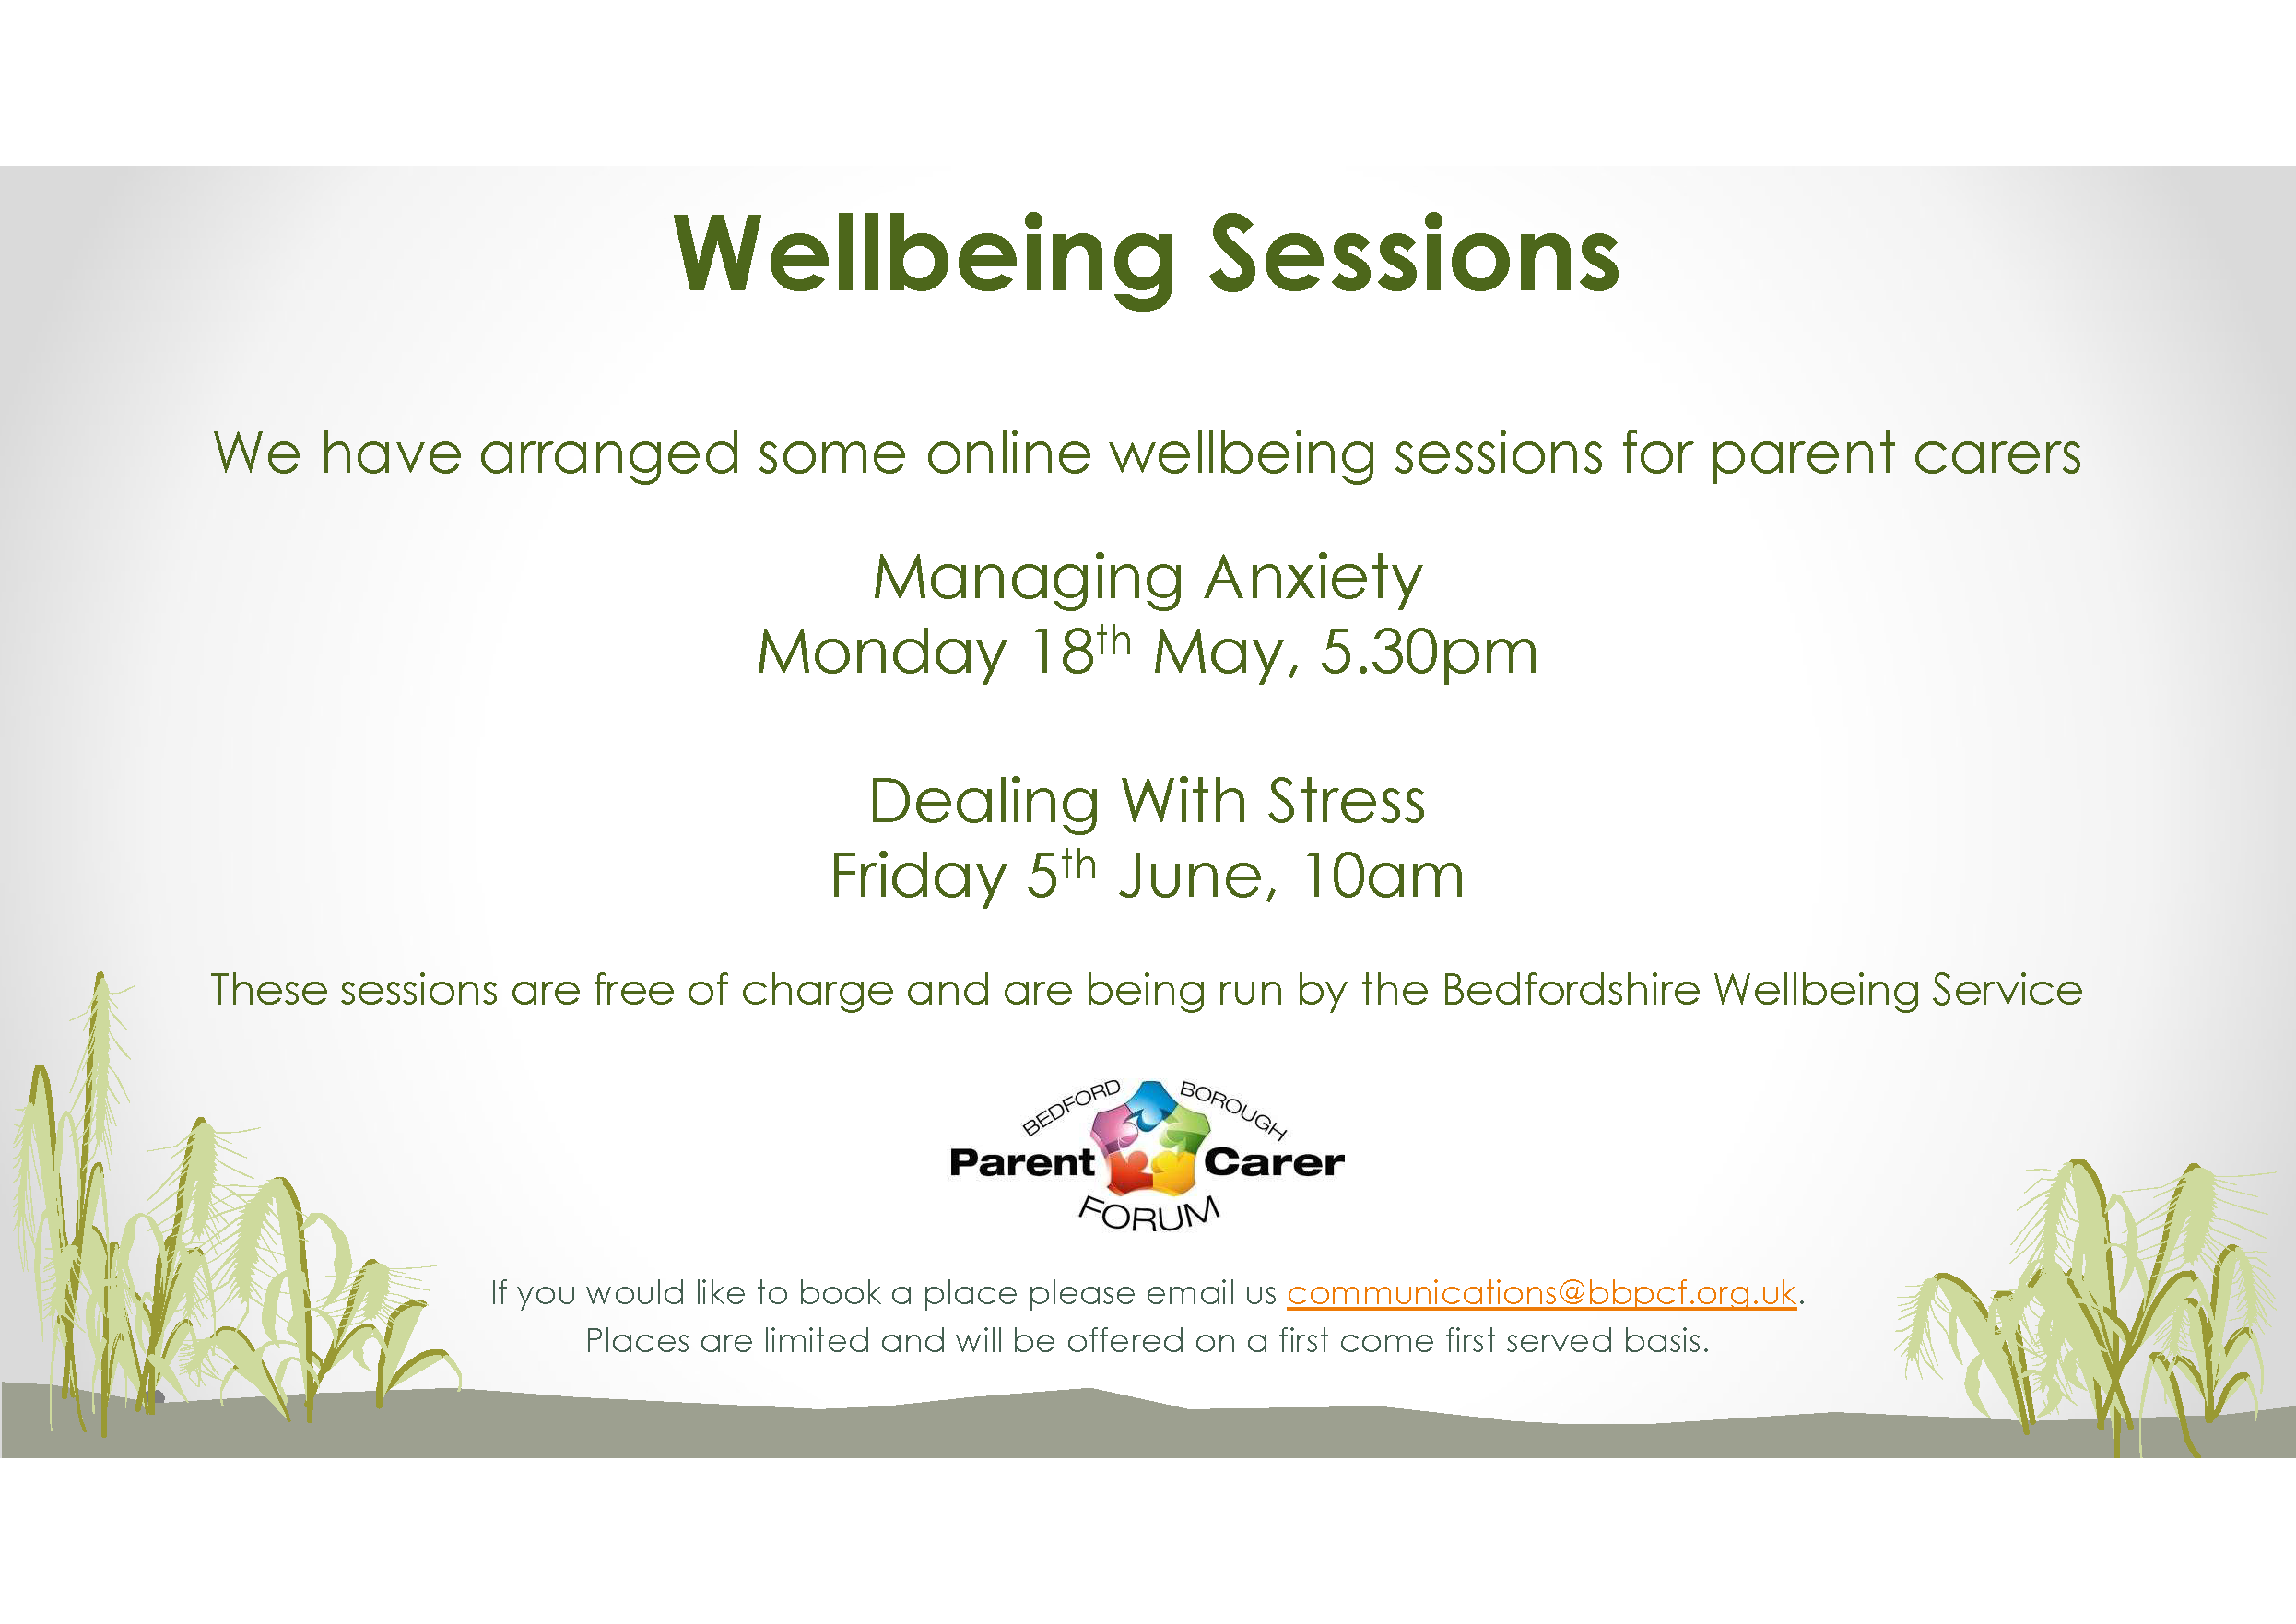 Managing Anxiety online session